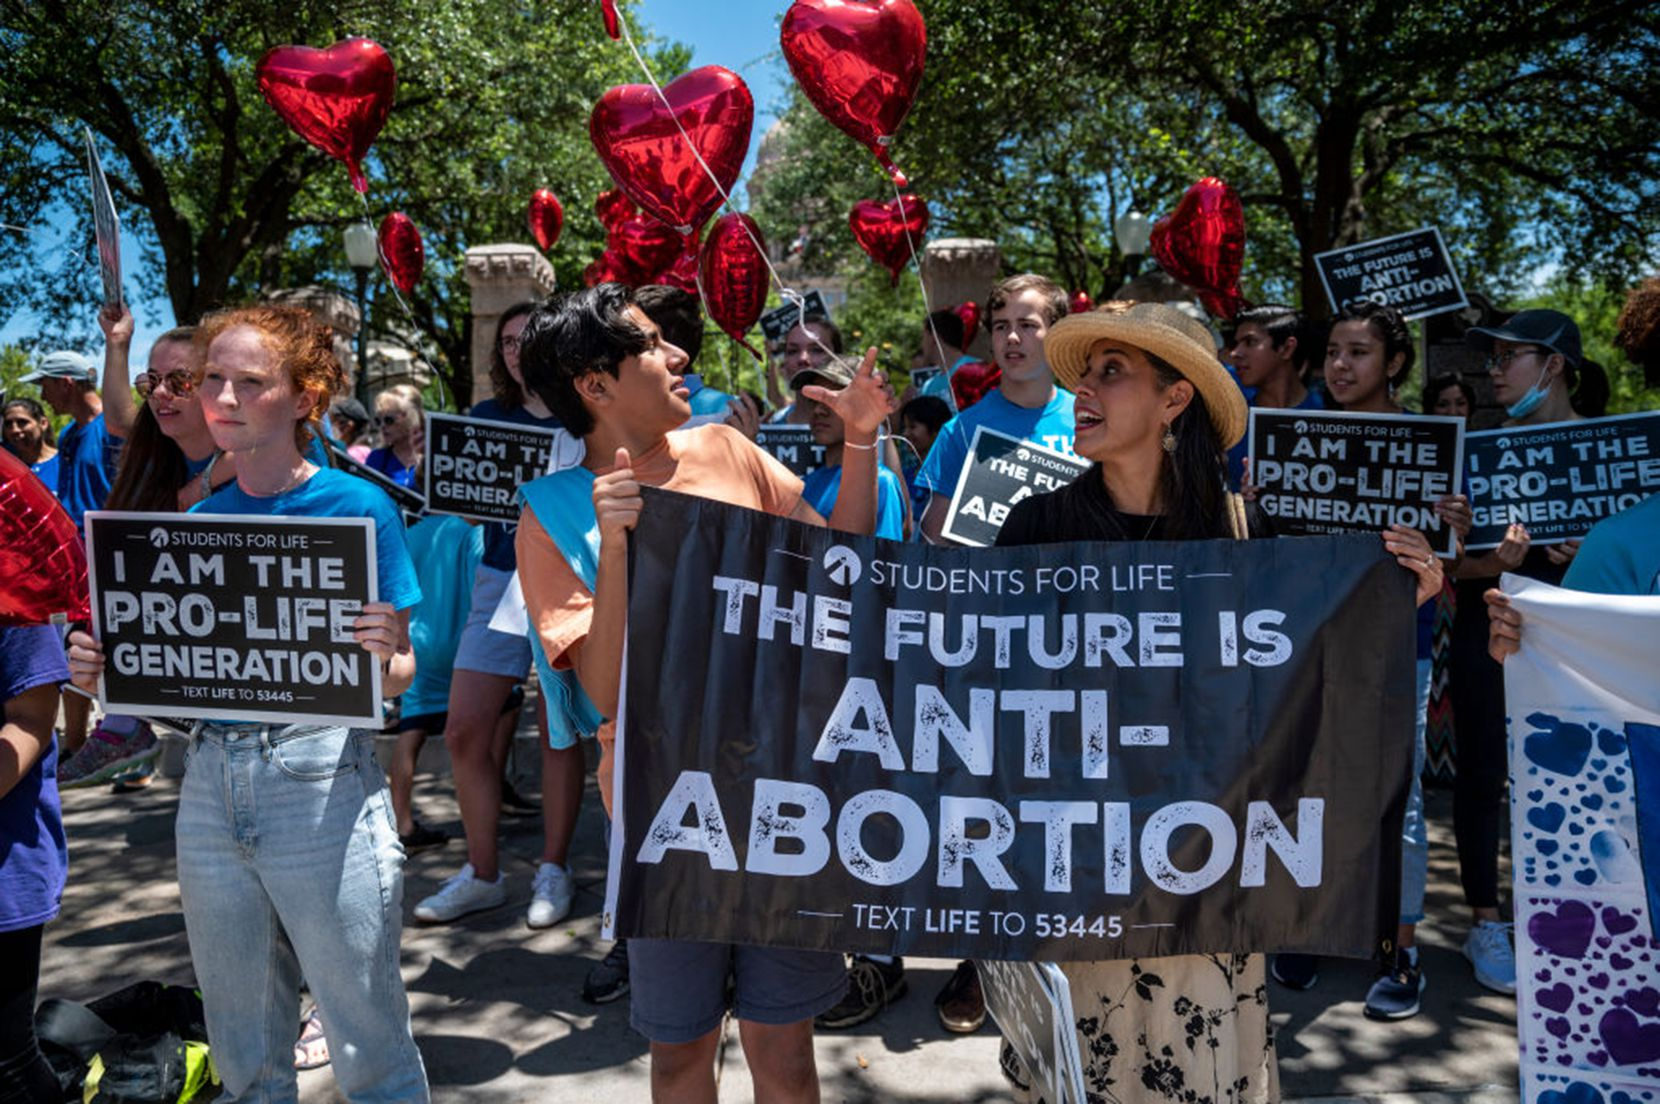 Pro-life protesters stand near the gate of the Texas Capitol on May 29, 2021.